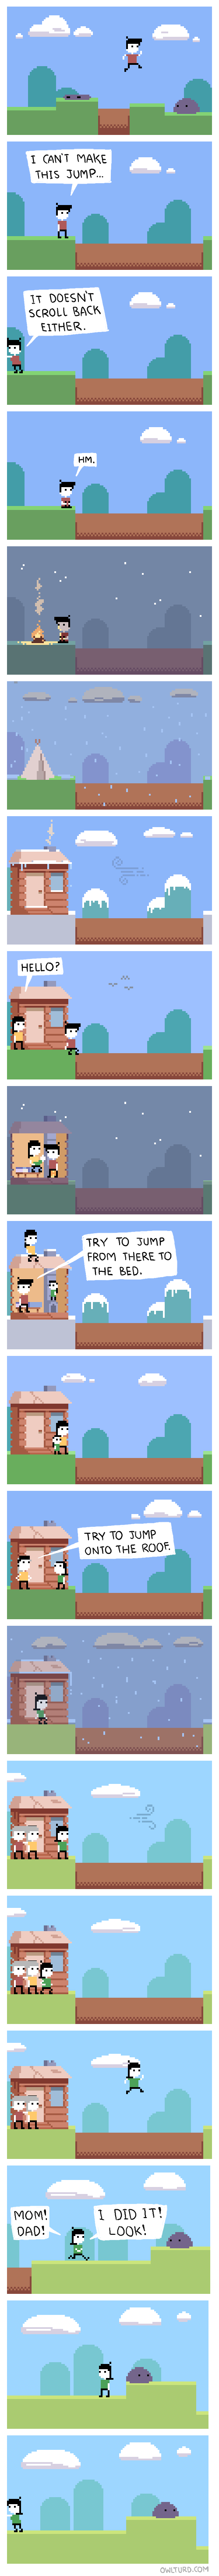 8 bit,video games,web comics